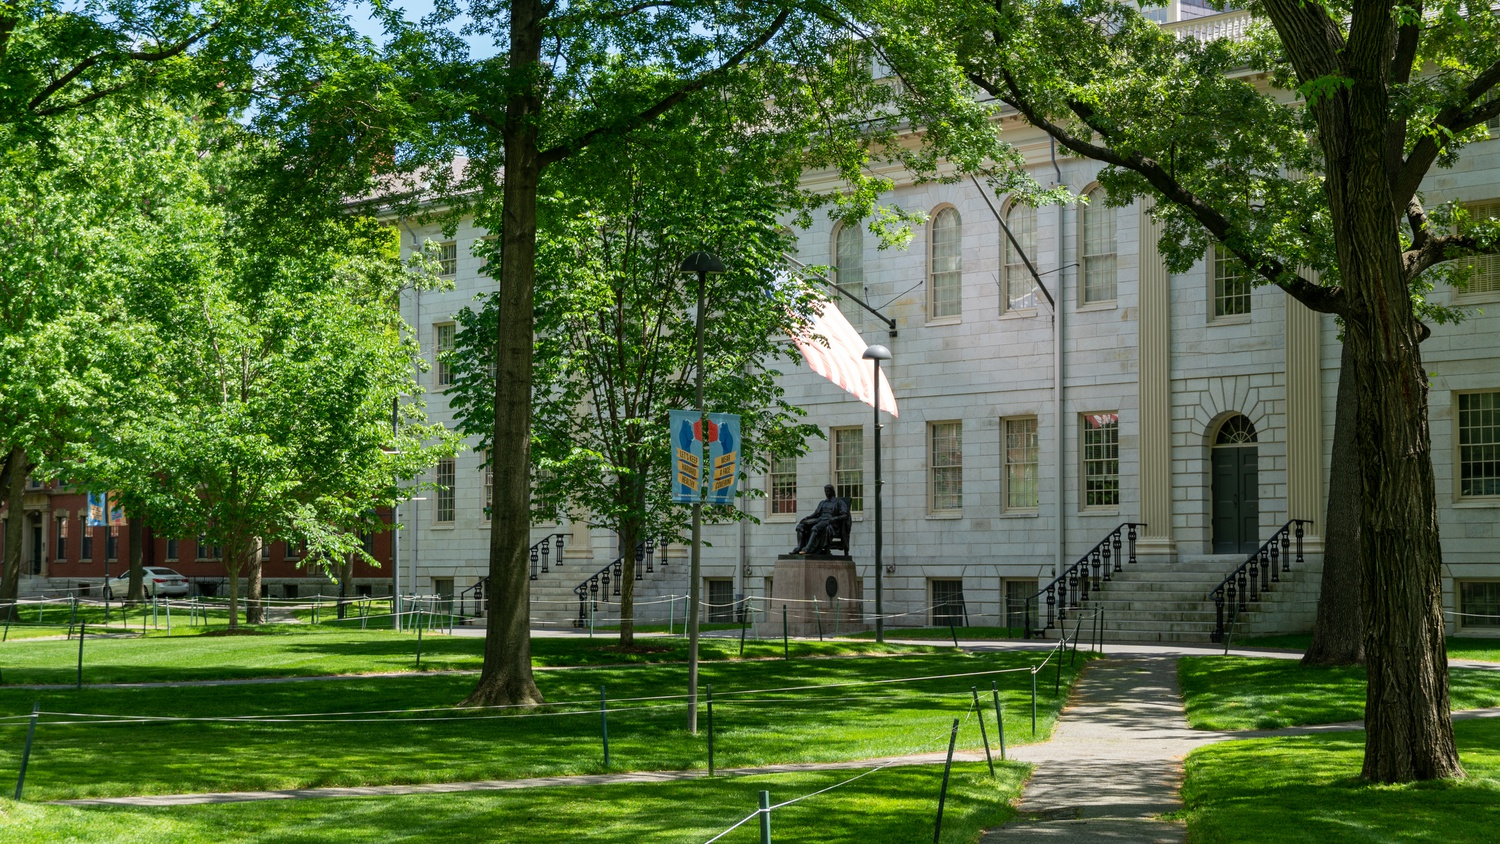 Ten Asian American alumni gifted more than $45 million to expand the Faculty of Arts and Sciences's Asian American studies program.